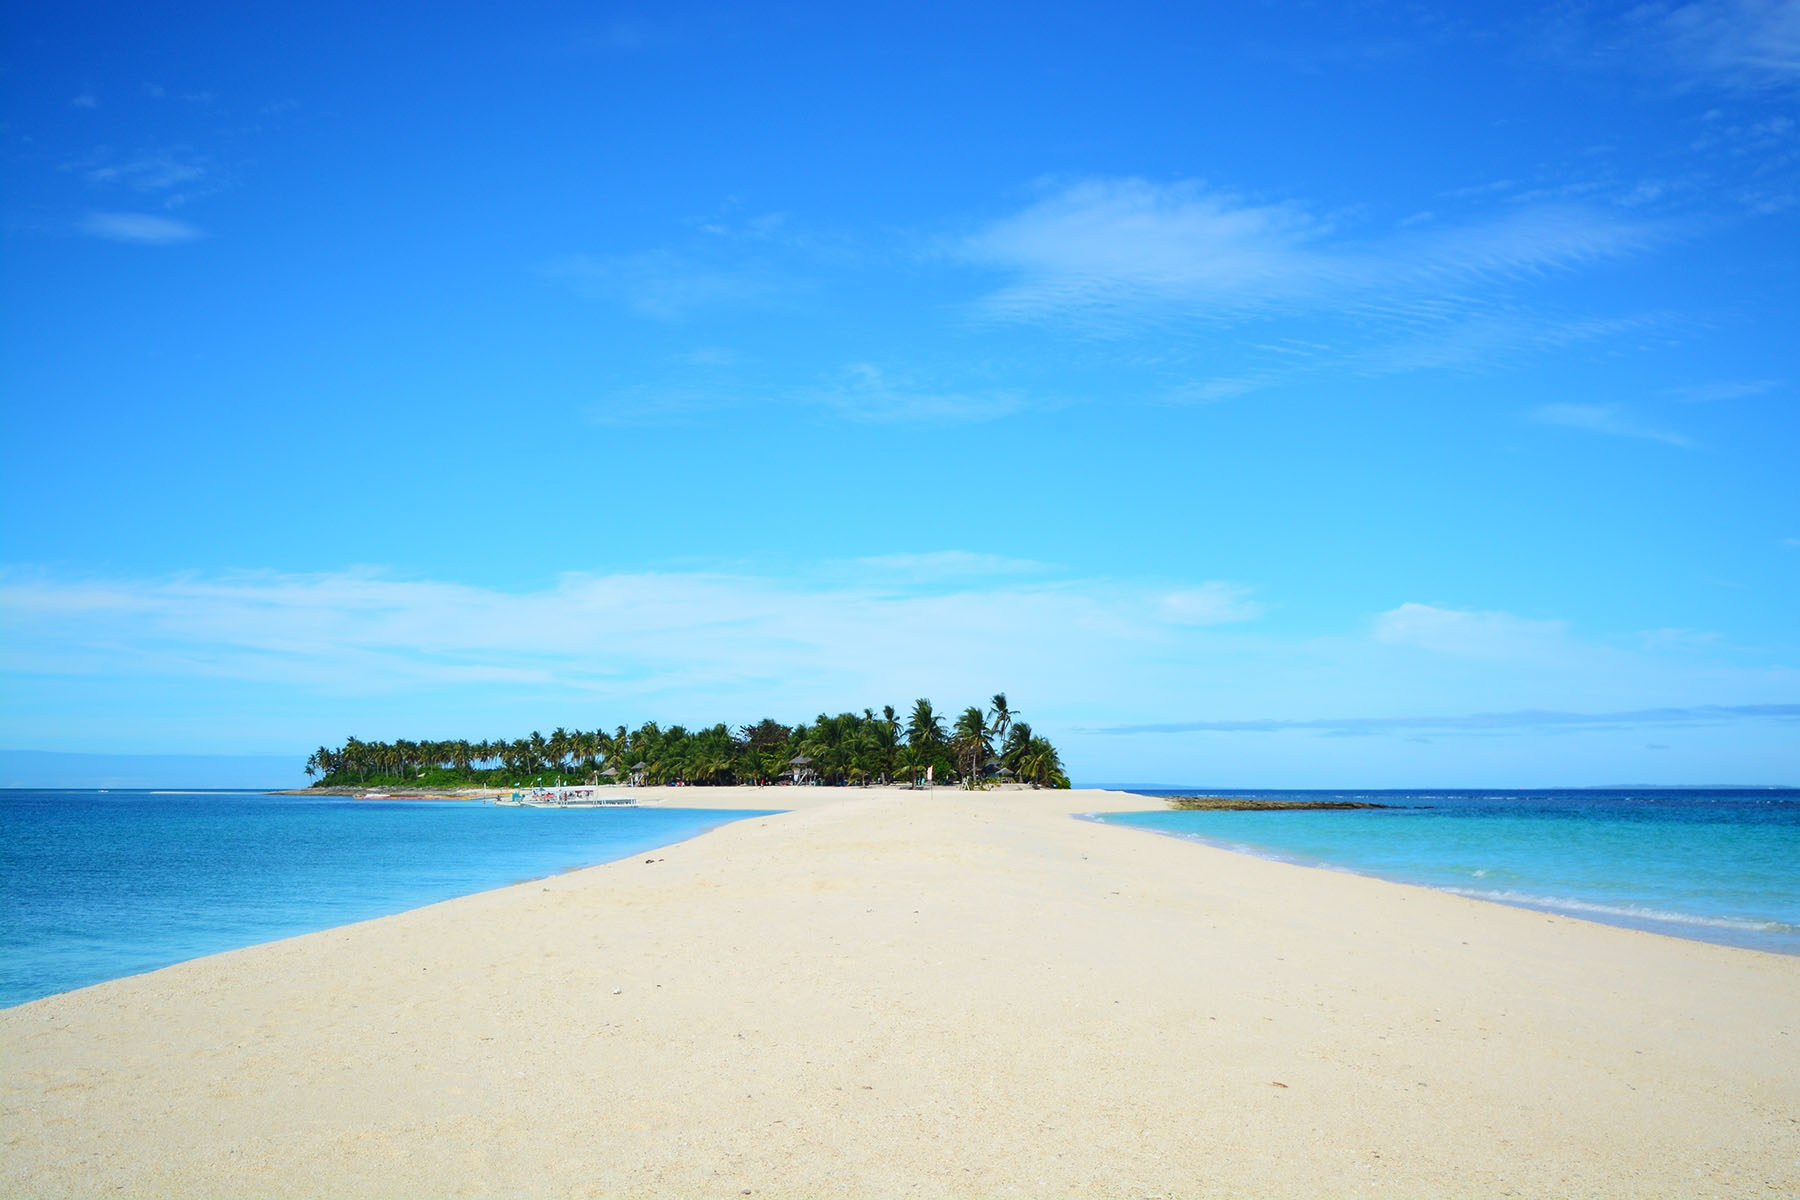 Kalanggaman Island Leyte Day Tour | With Lunch and Boat Transfer - day 1